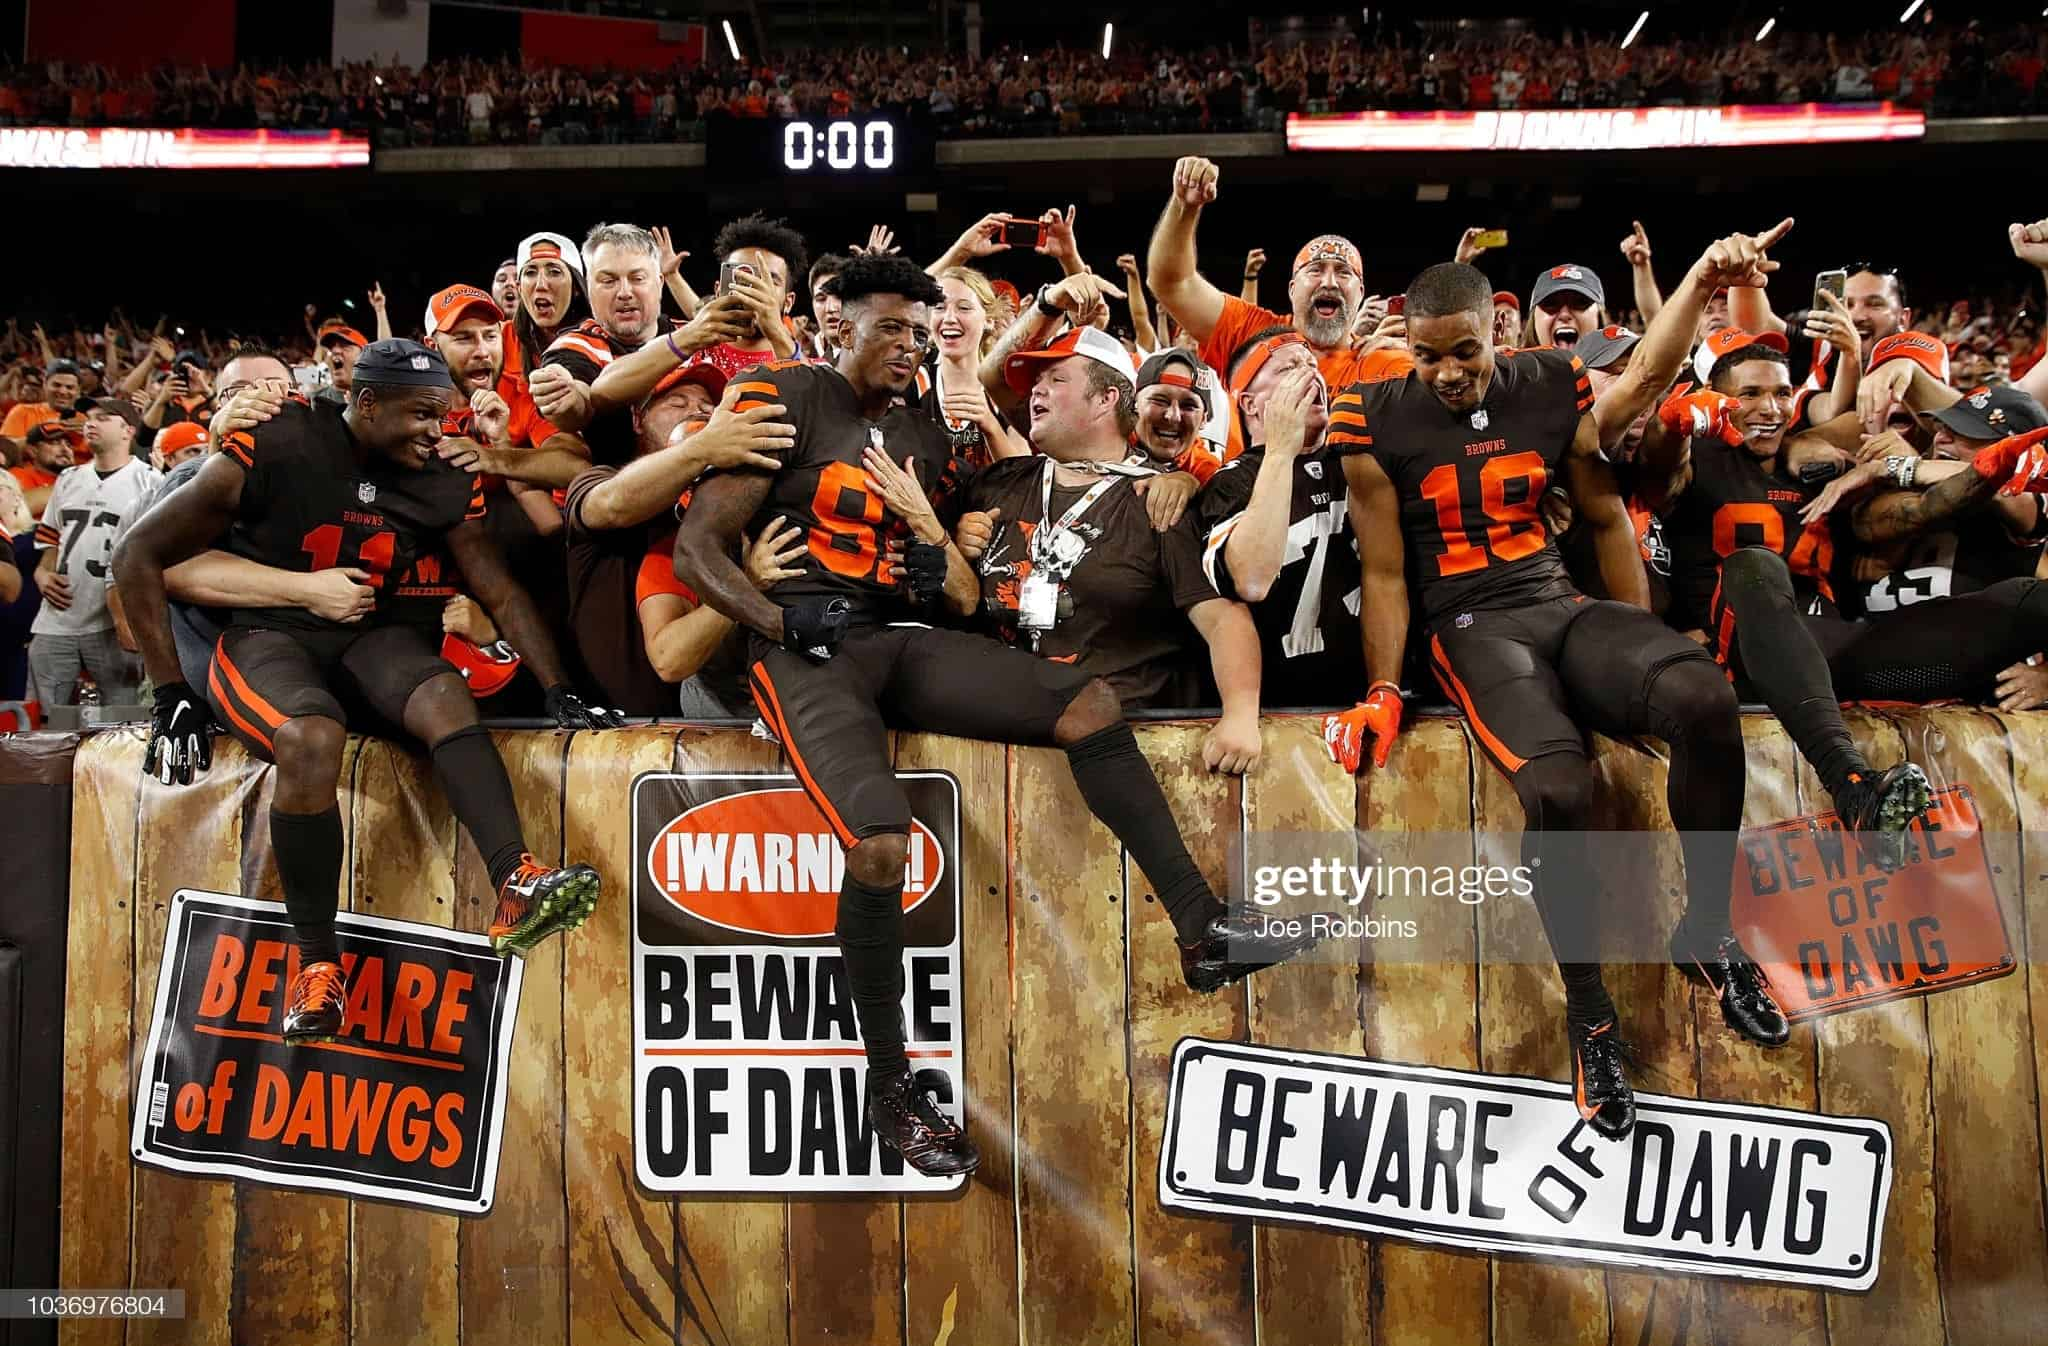 2021 NFL Predictions: Browns